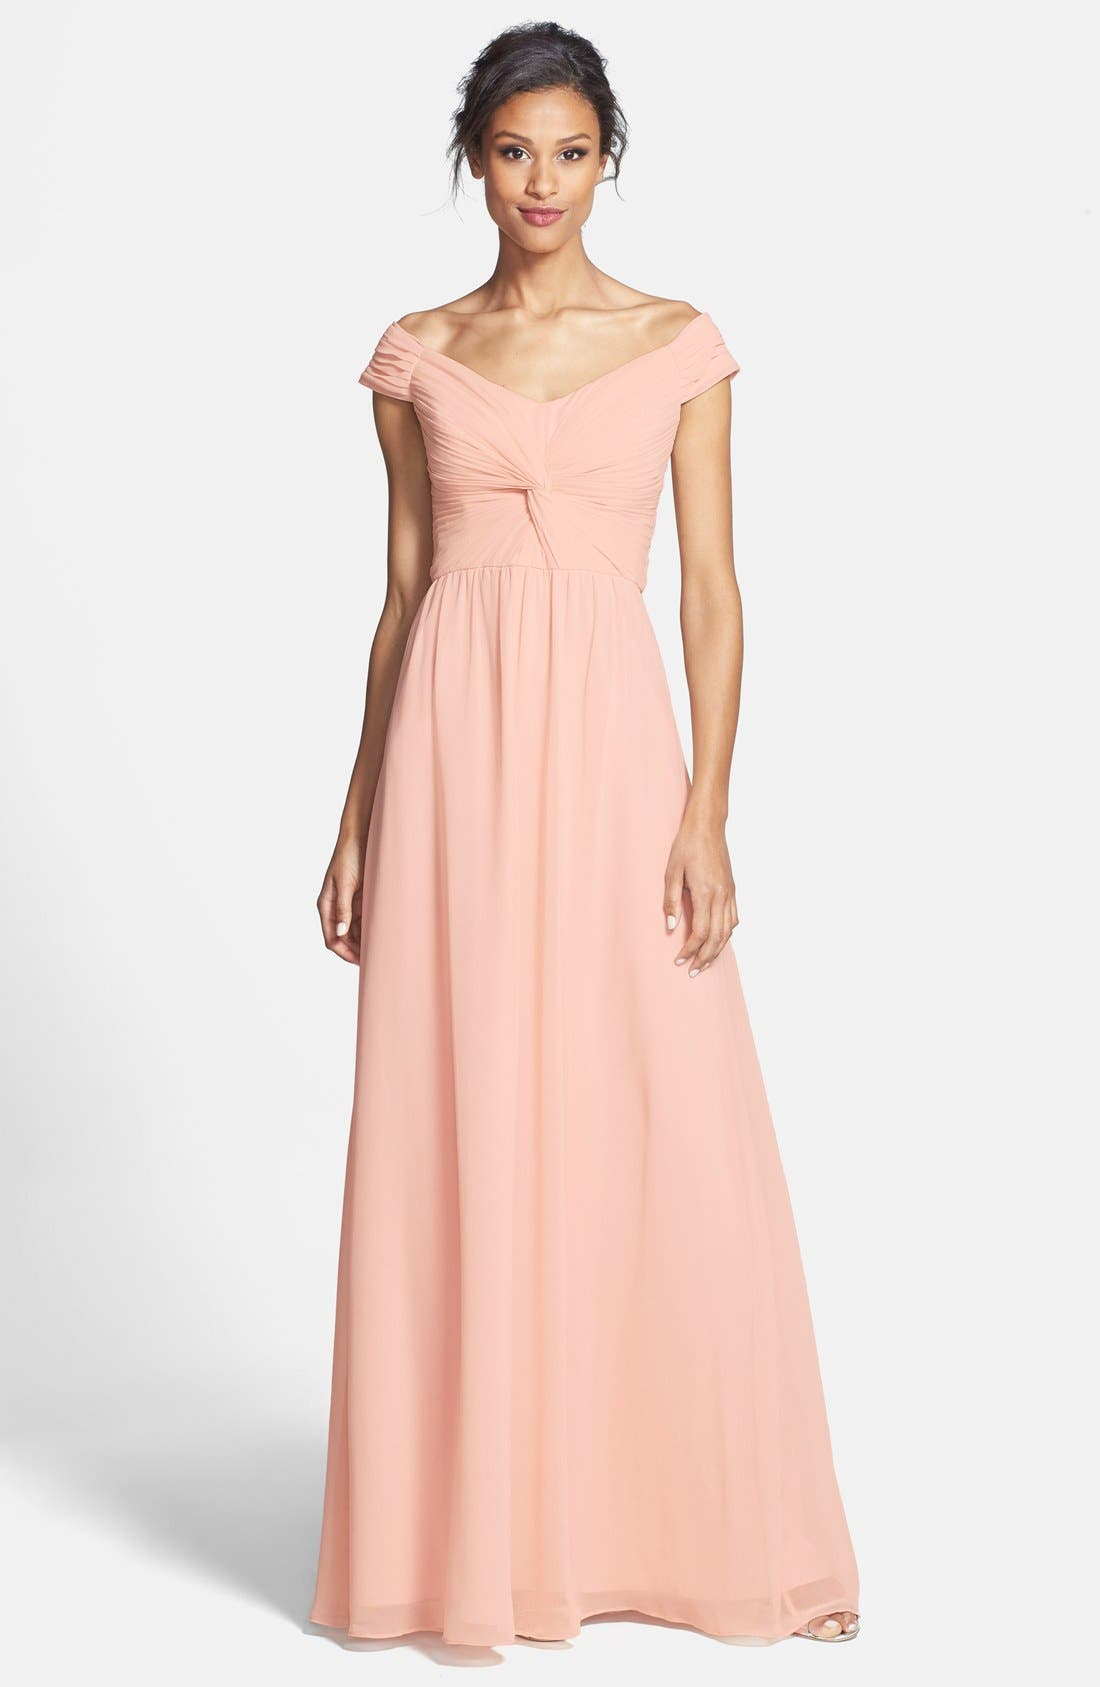 Main Image - ERIN erin fetherston 'Clarisse' Off the Shoulder Front Twist Chiffon Gown